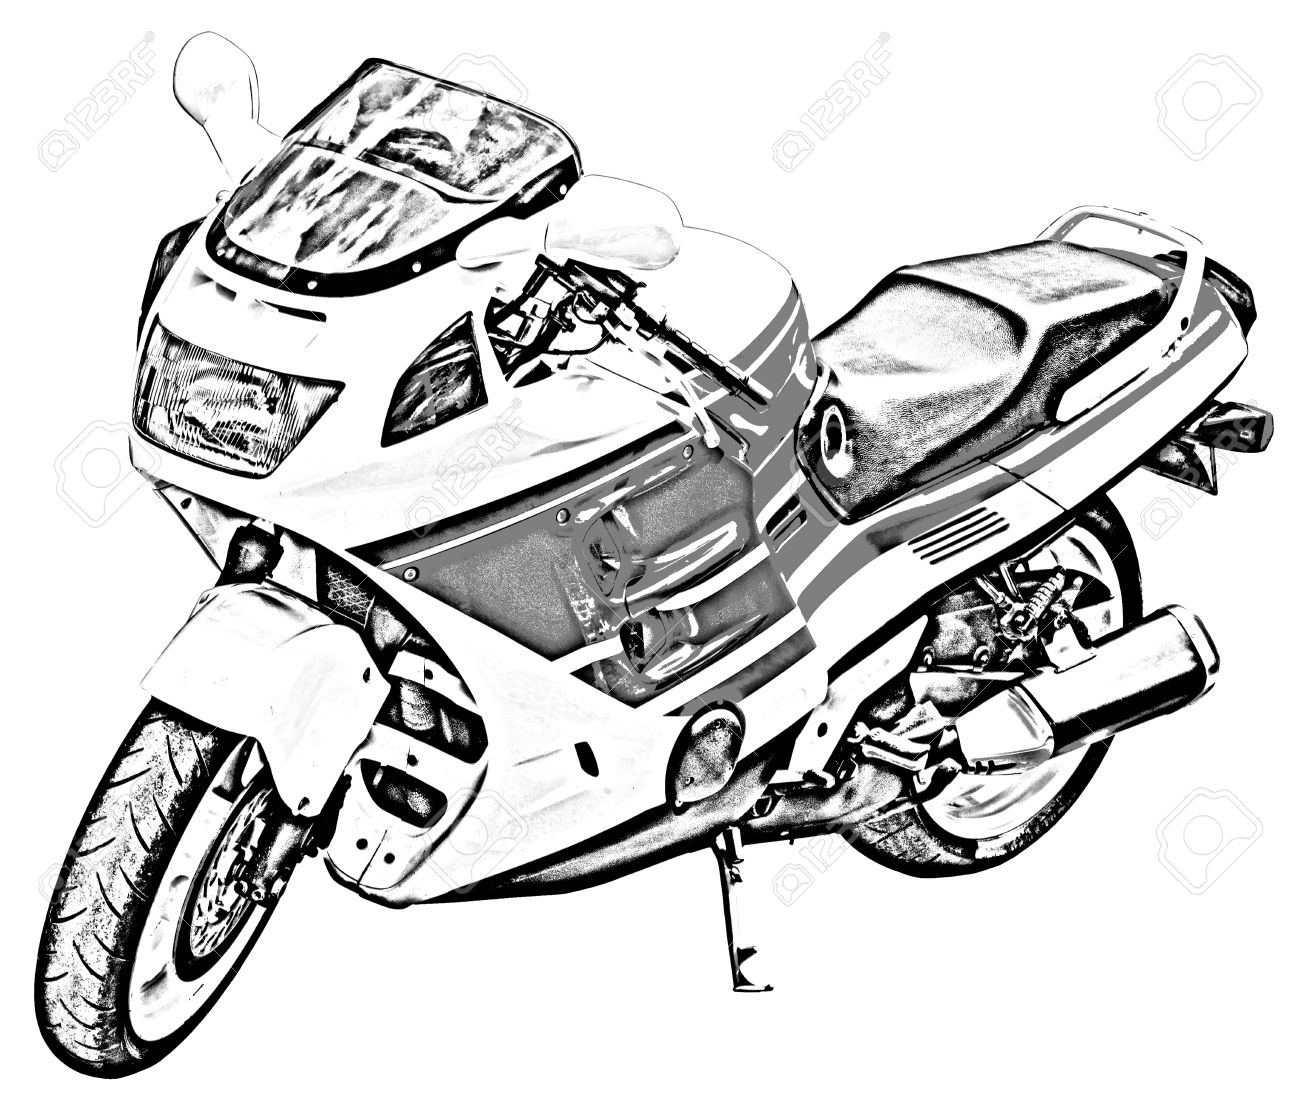 1300x1103 Motorcycle Drawing Stock Photo, Picture And Royalty Free Image